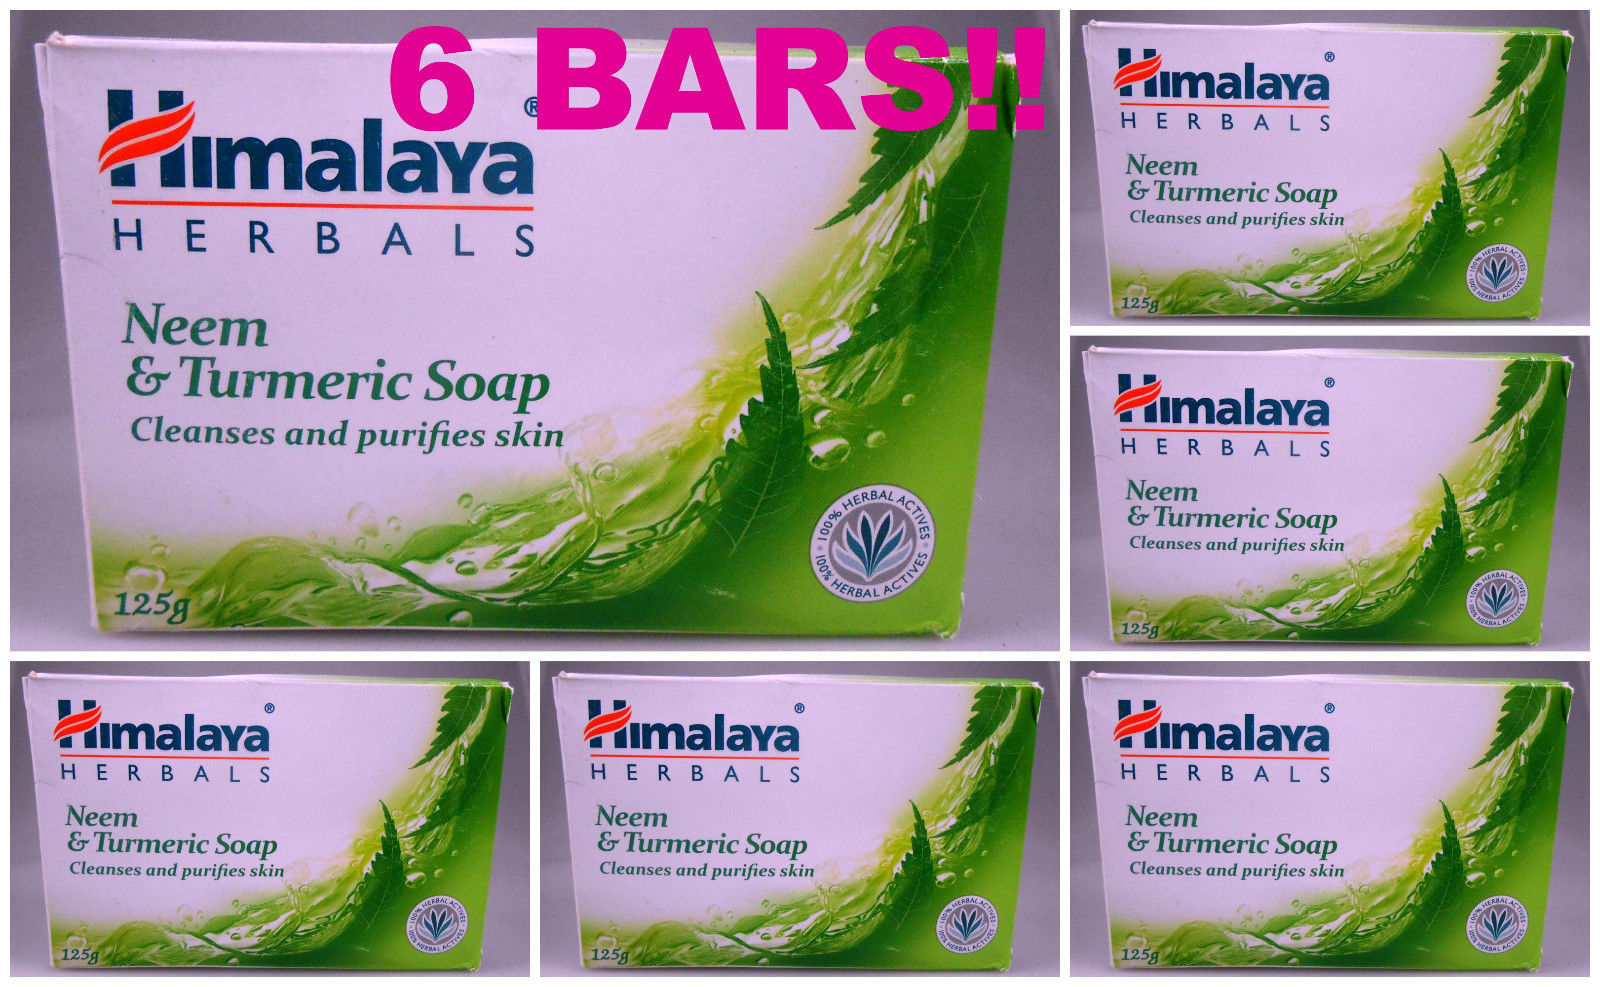 Primary image for 6 BARS! Himalaya Herbals Neem & Turmeric Soap Cleanses & Purifies Skin USA SELLR